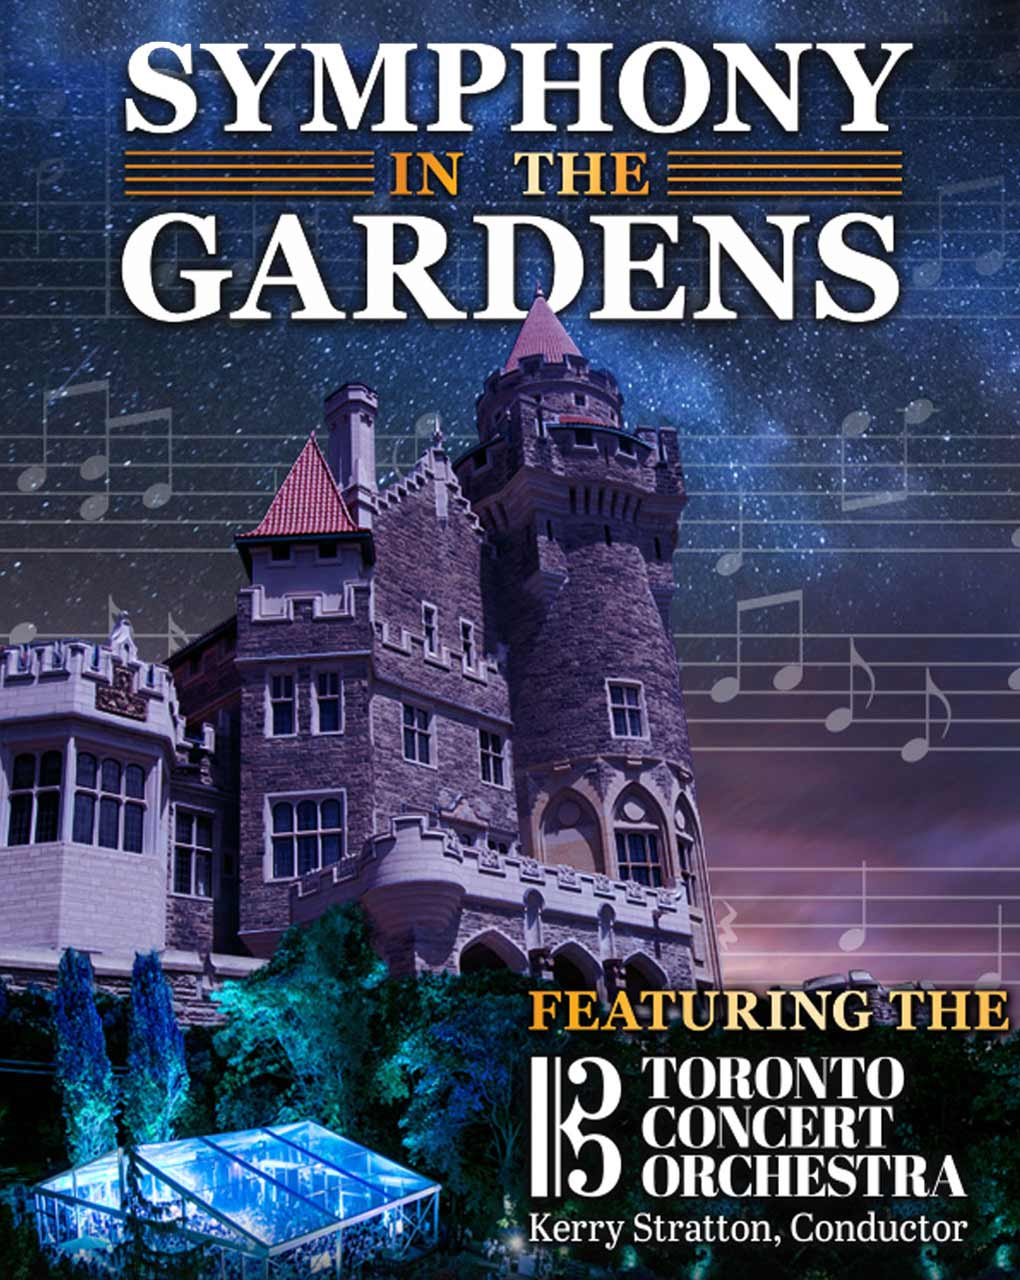 SYMPHONY IN THE GARDENS